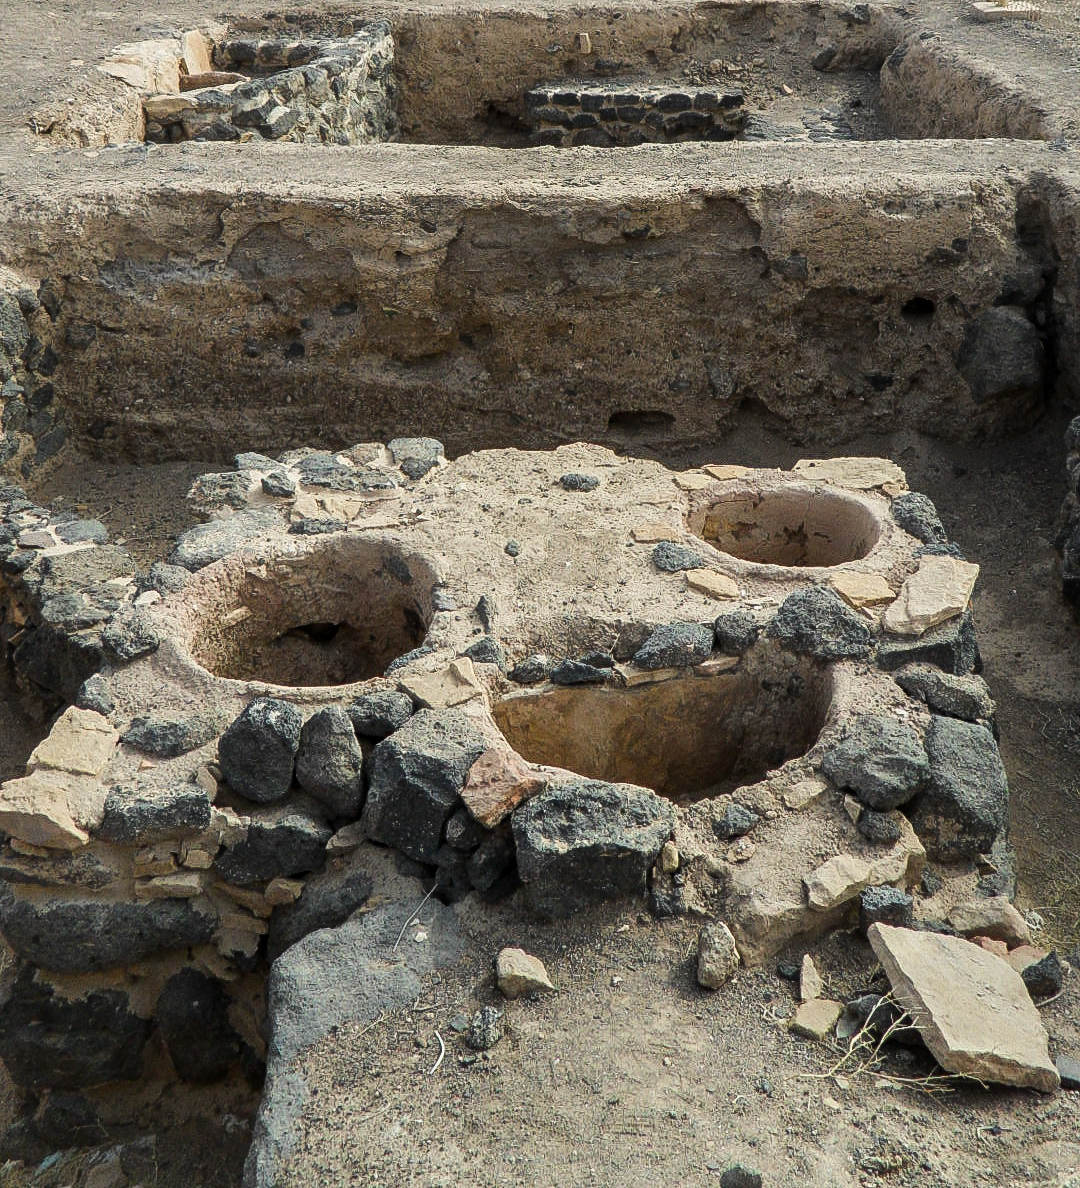 Old ovens of Fayd (photo: F. Egal)